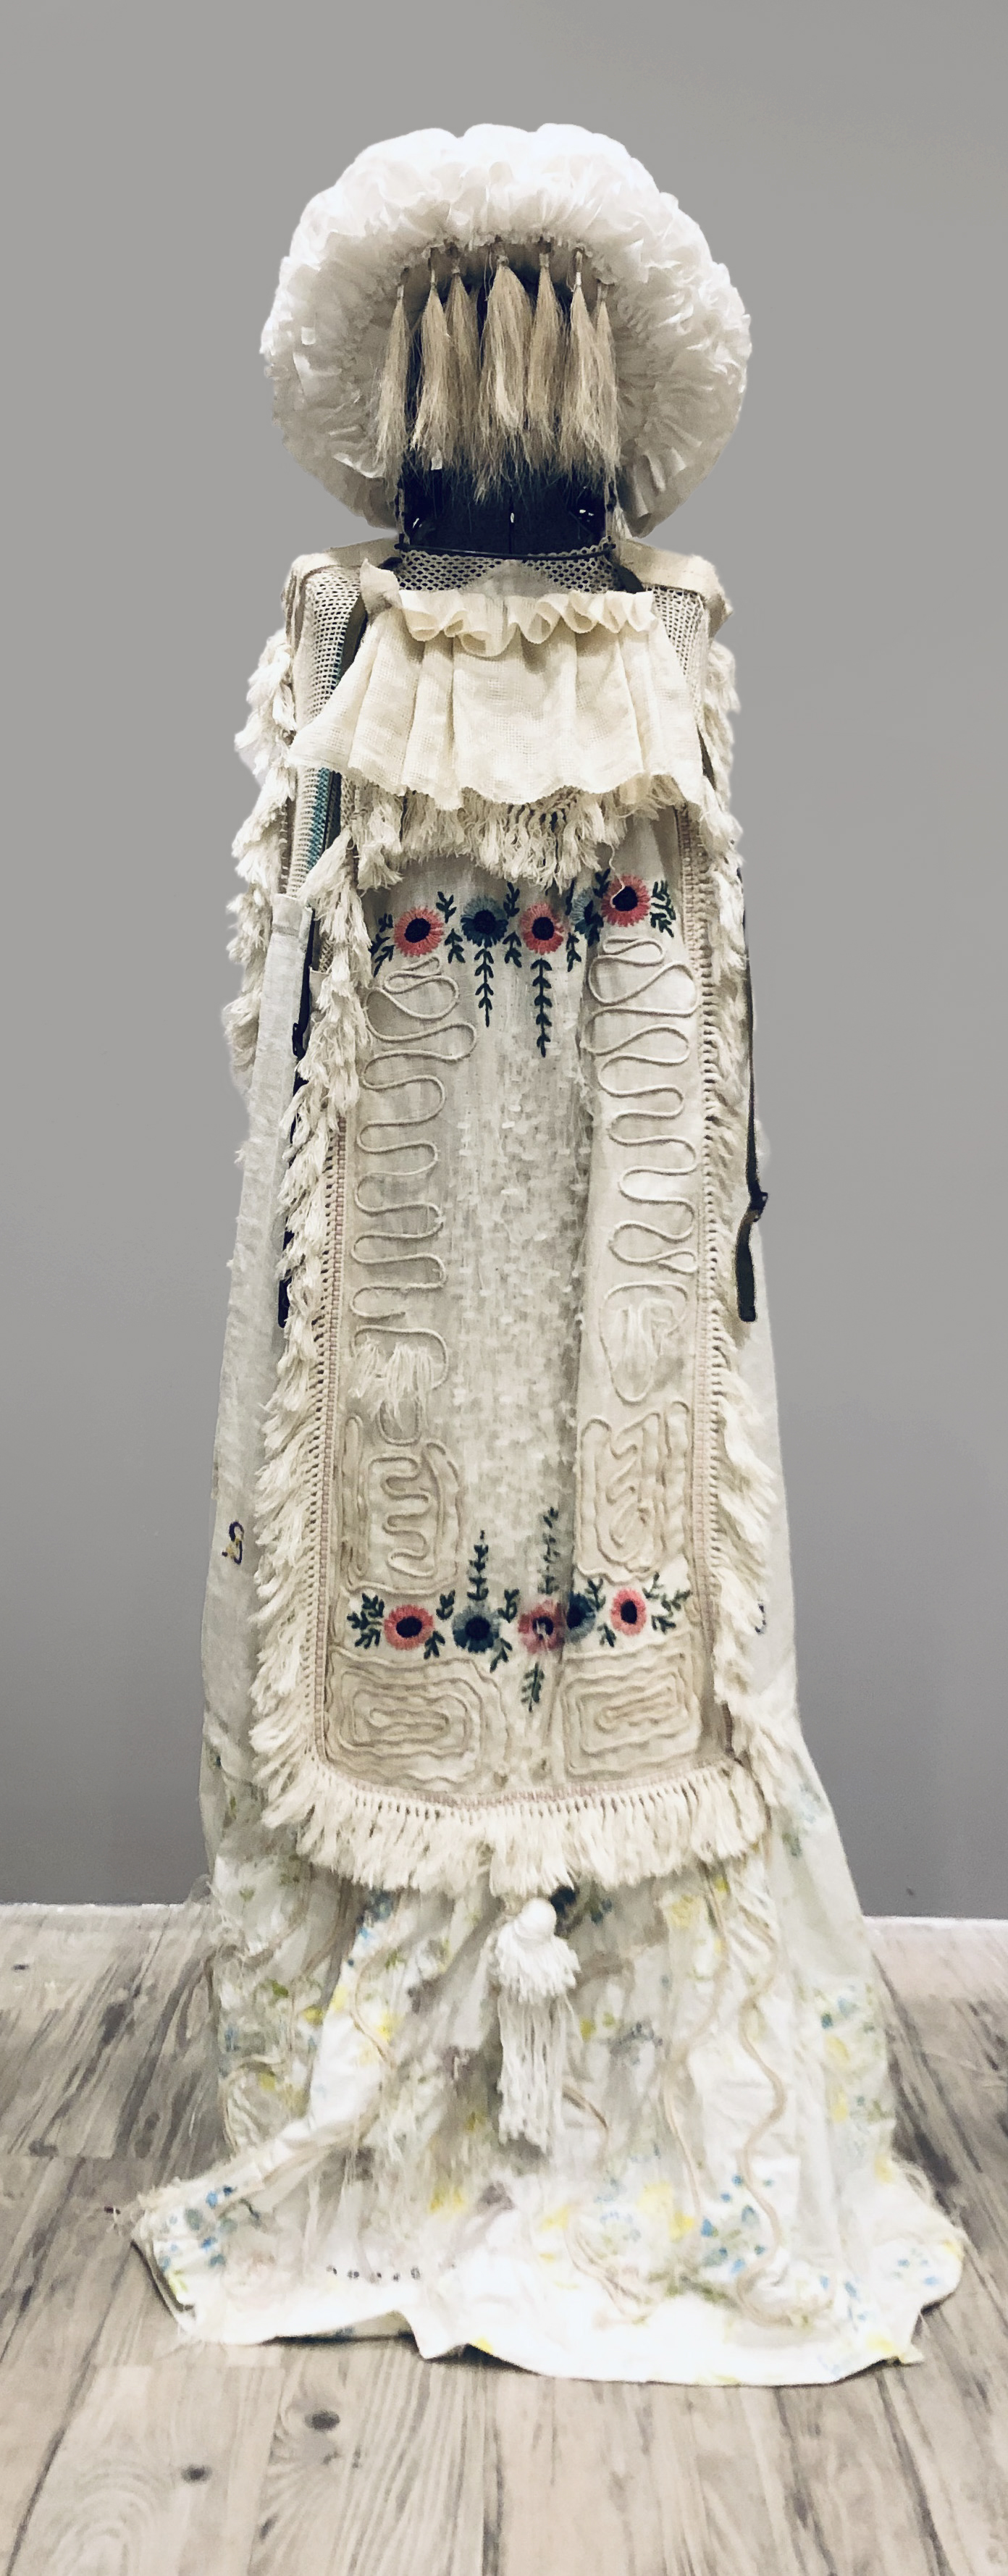 The Genteel Gown of Feminine Blindness, 2019